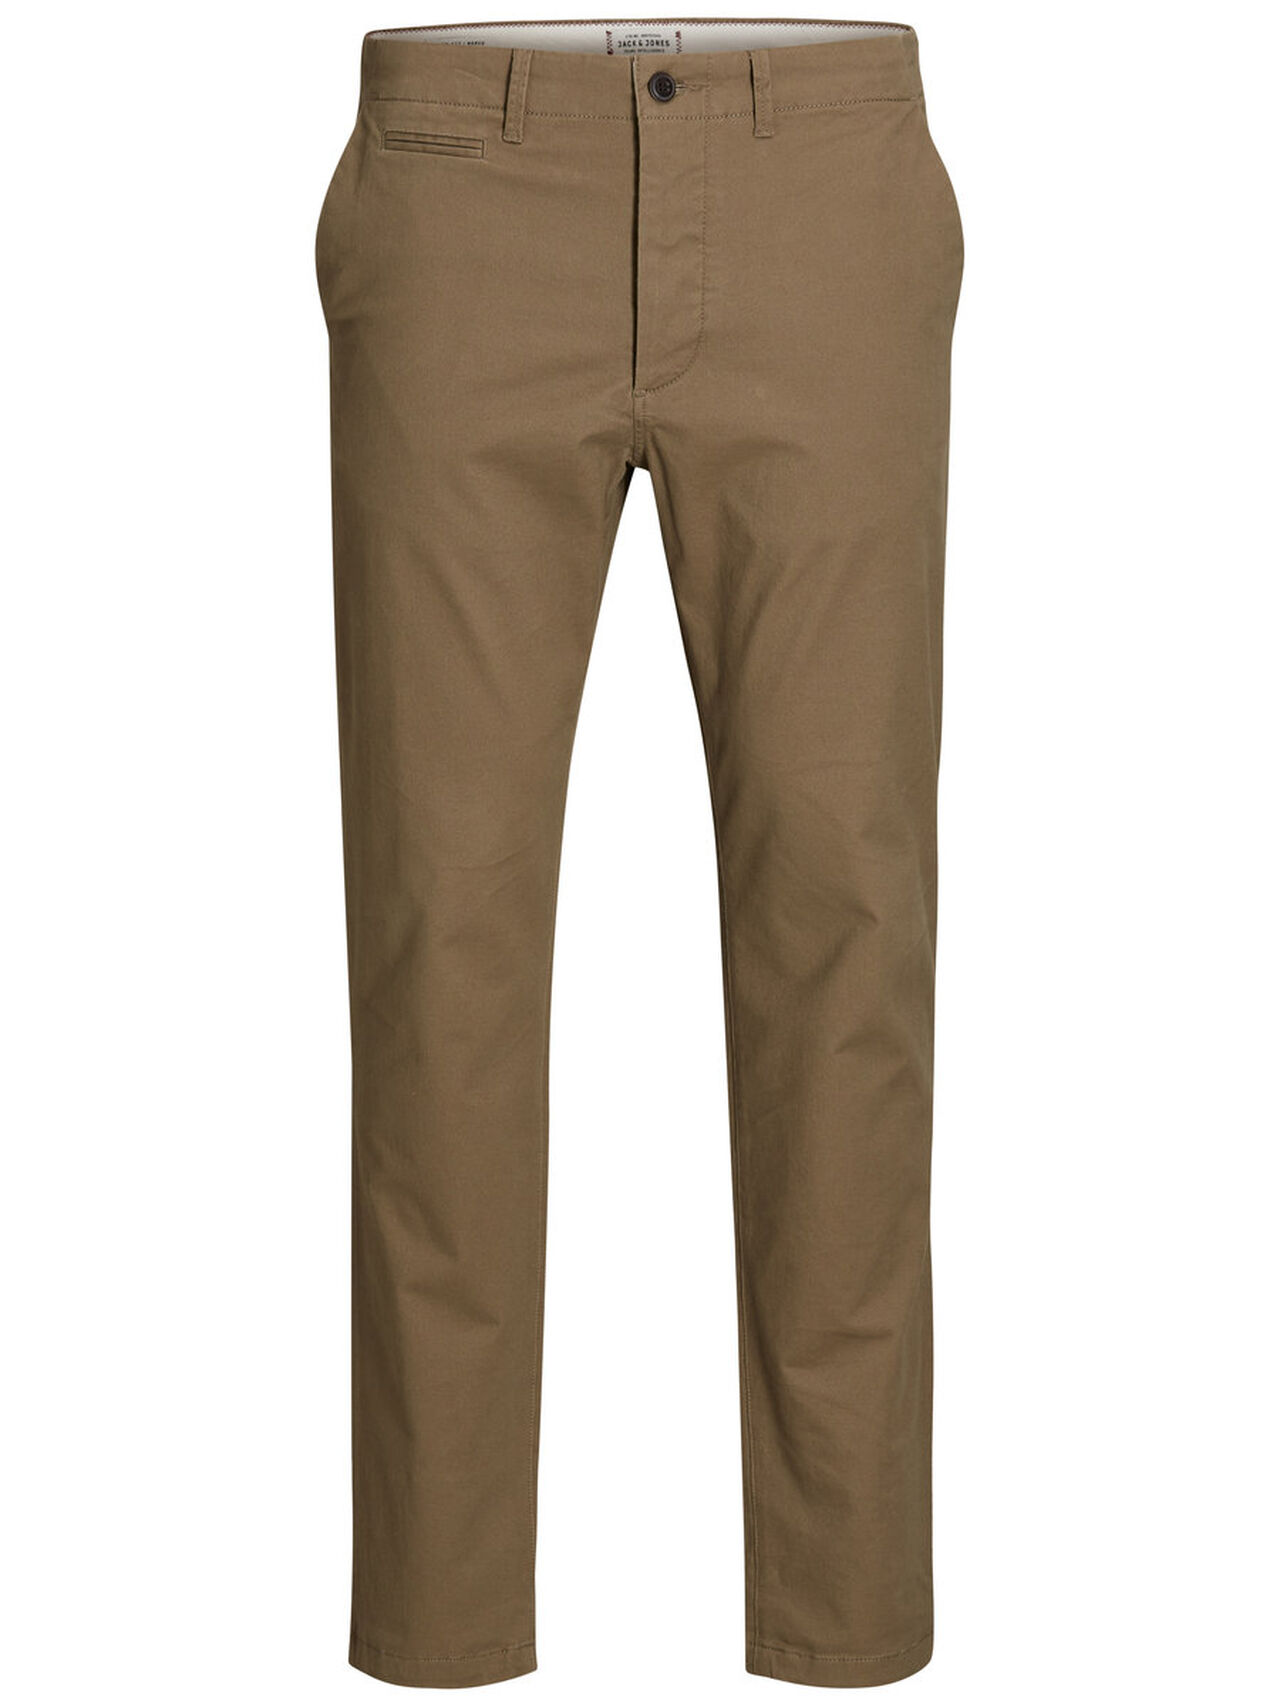 JACK & JONES Marco Enzo Tan Slim Fit Chinos Men Brown